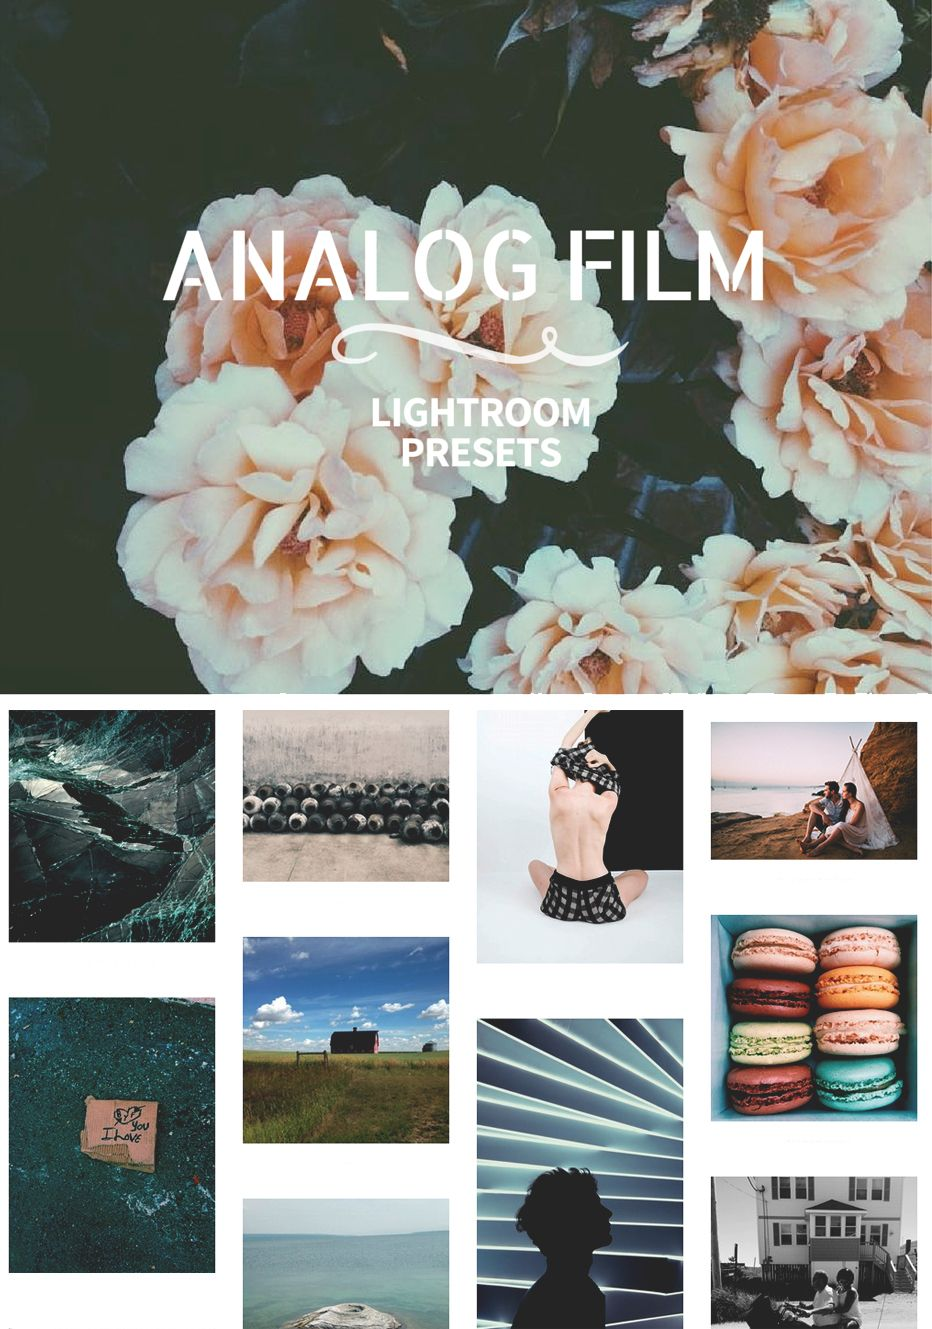 Emulate The Look Of Analog Film Photos With 400 Vscocam Vsco Film Inspired Lightroom Pr Vsco Lightroom Presets Film Presets Lightroom Lightroom Presets